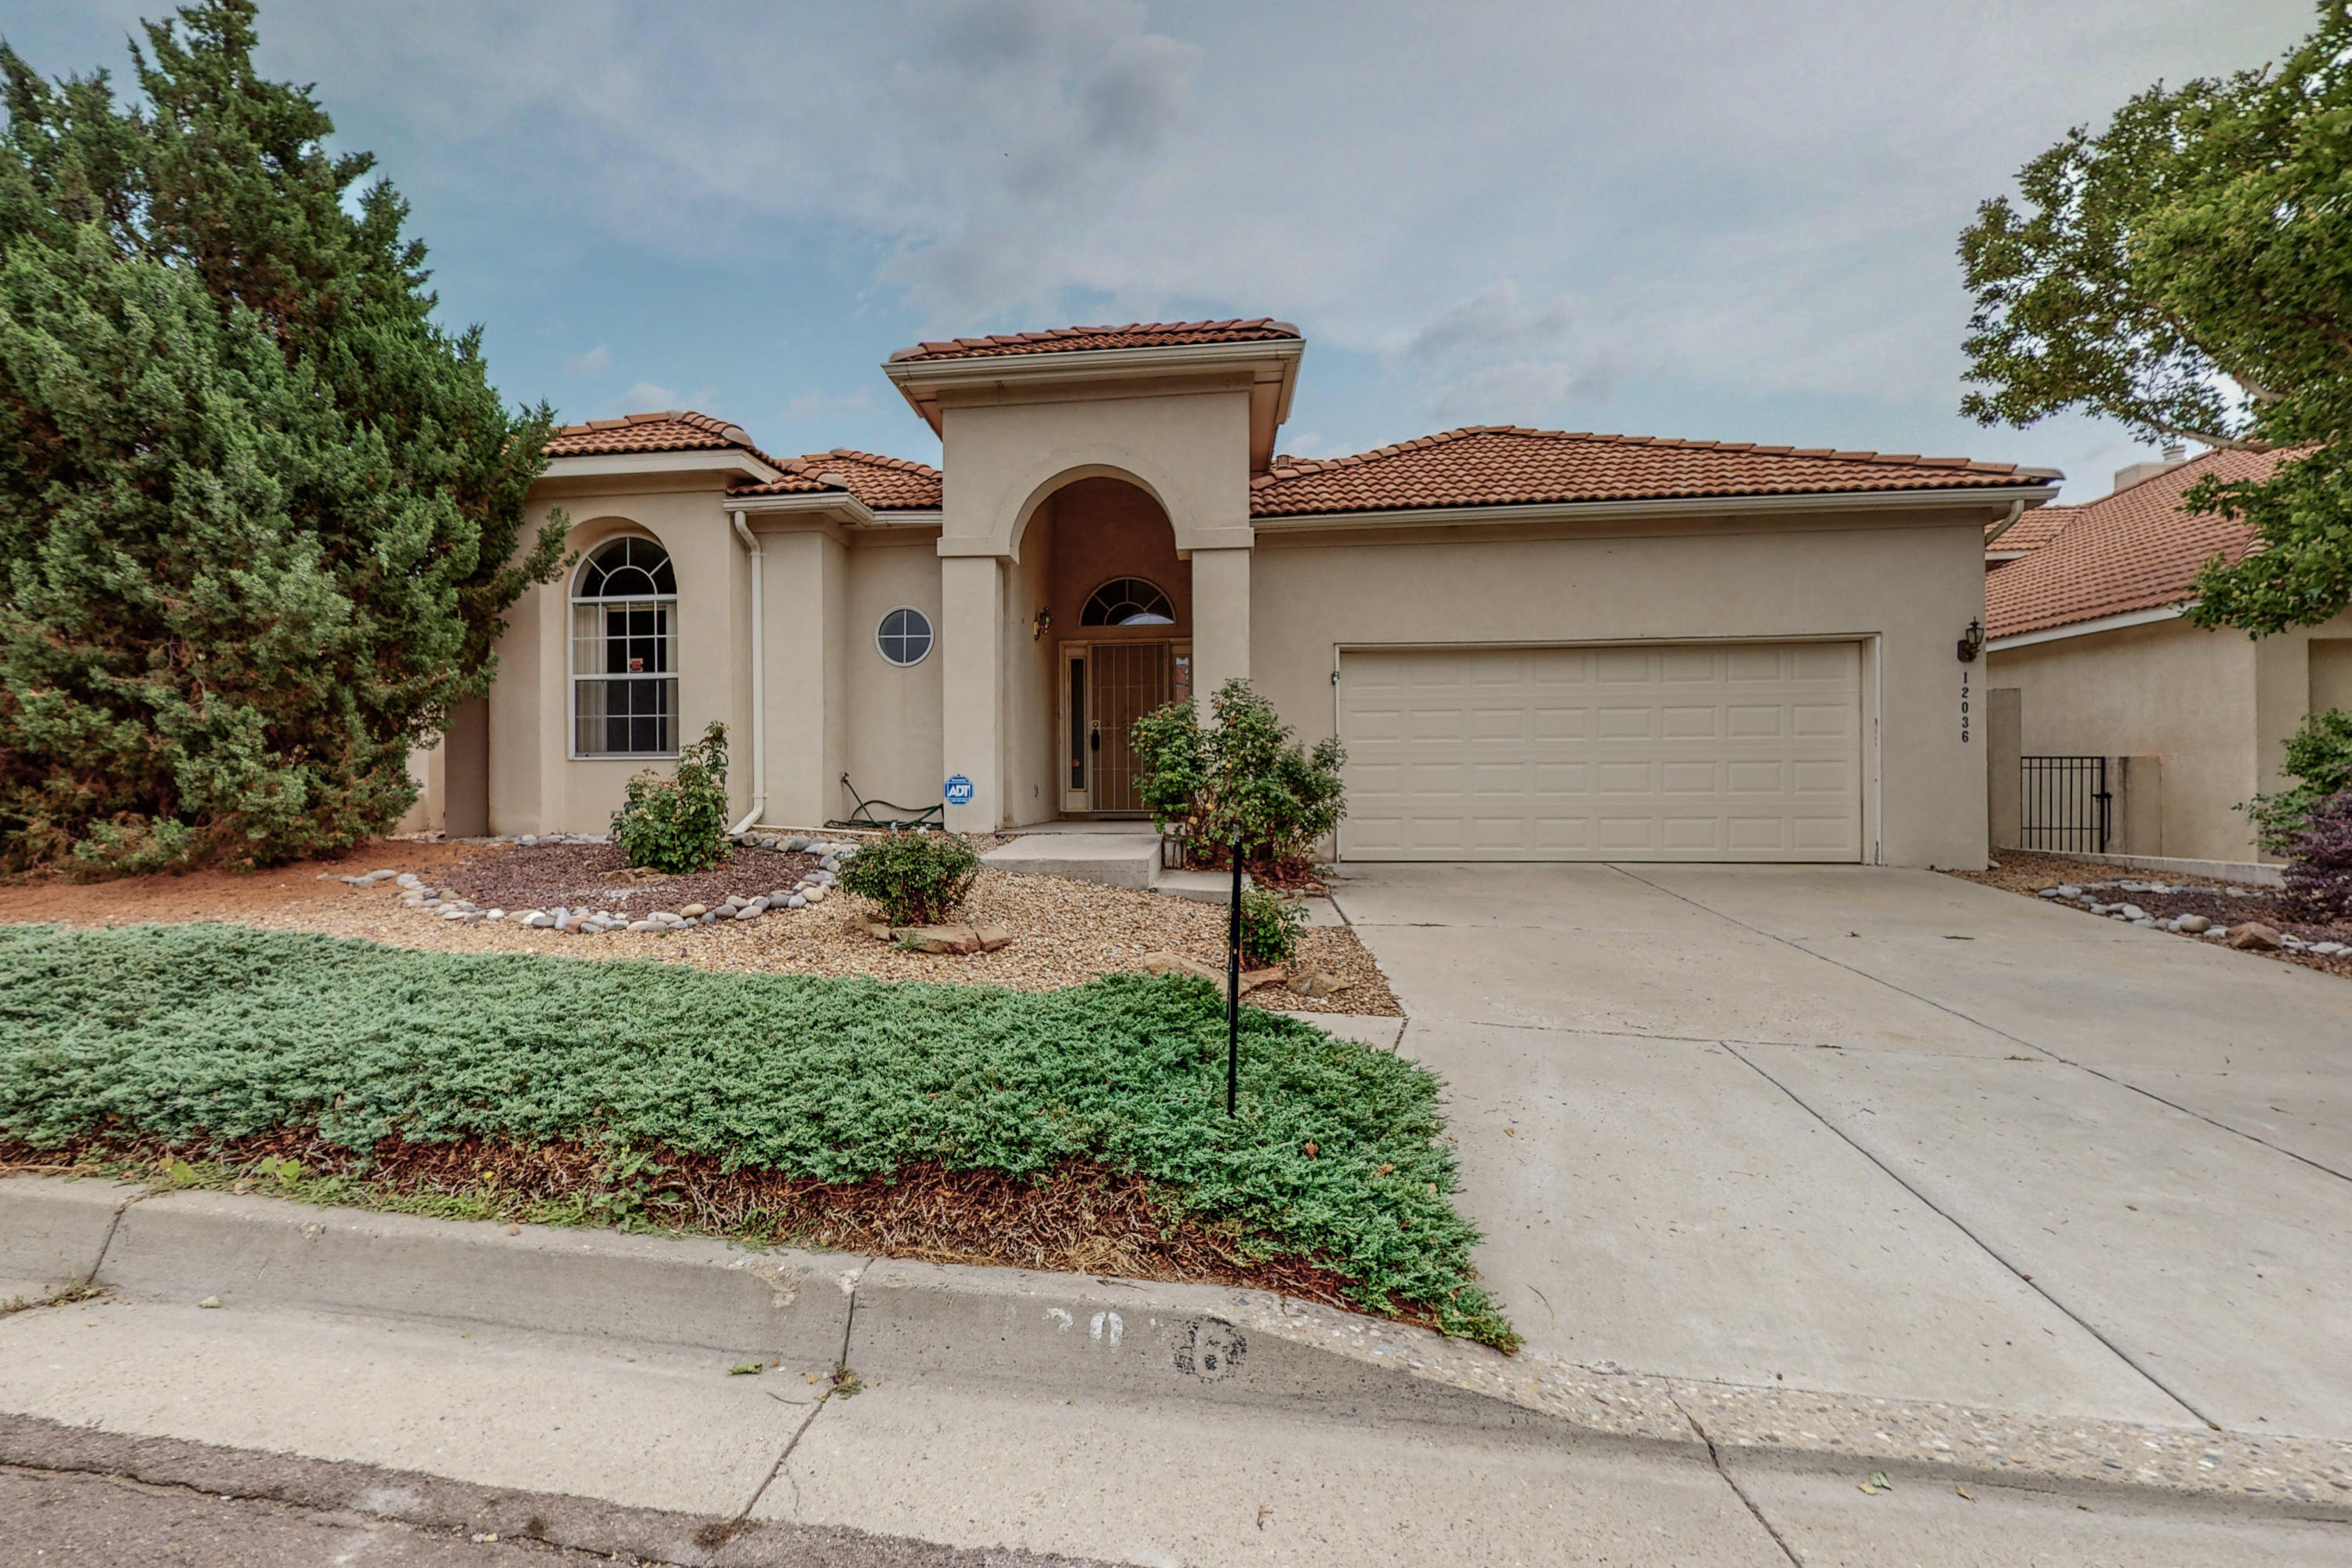 Lovely one owner Single level home in the beautiful Antelope Run subdivision on a Cul de Sac - NO HOA! Open floorplan, south facing backyard, Light & bright! Updates include very recent refrigerated A/C and furnace, new carpet just installed, freshly painted interior in custom colors. Kitchen open to the dining room and spacious living room with fireplace. Very large master suite with separate shower and tub. 2 good sized bedrooms. Laundry room with storage. Built in vacuum system with accessories. BIG 2 car garage.